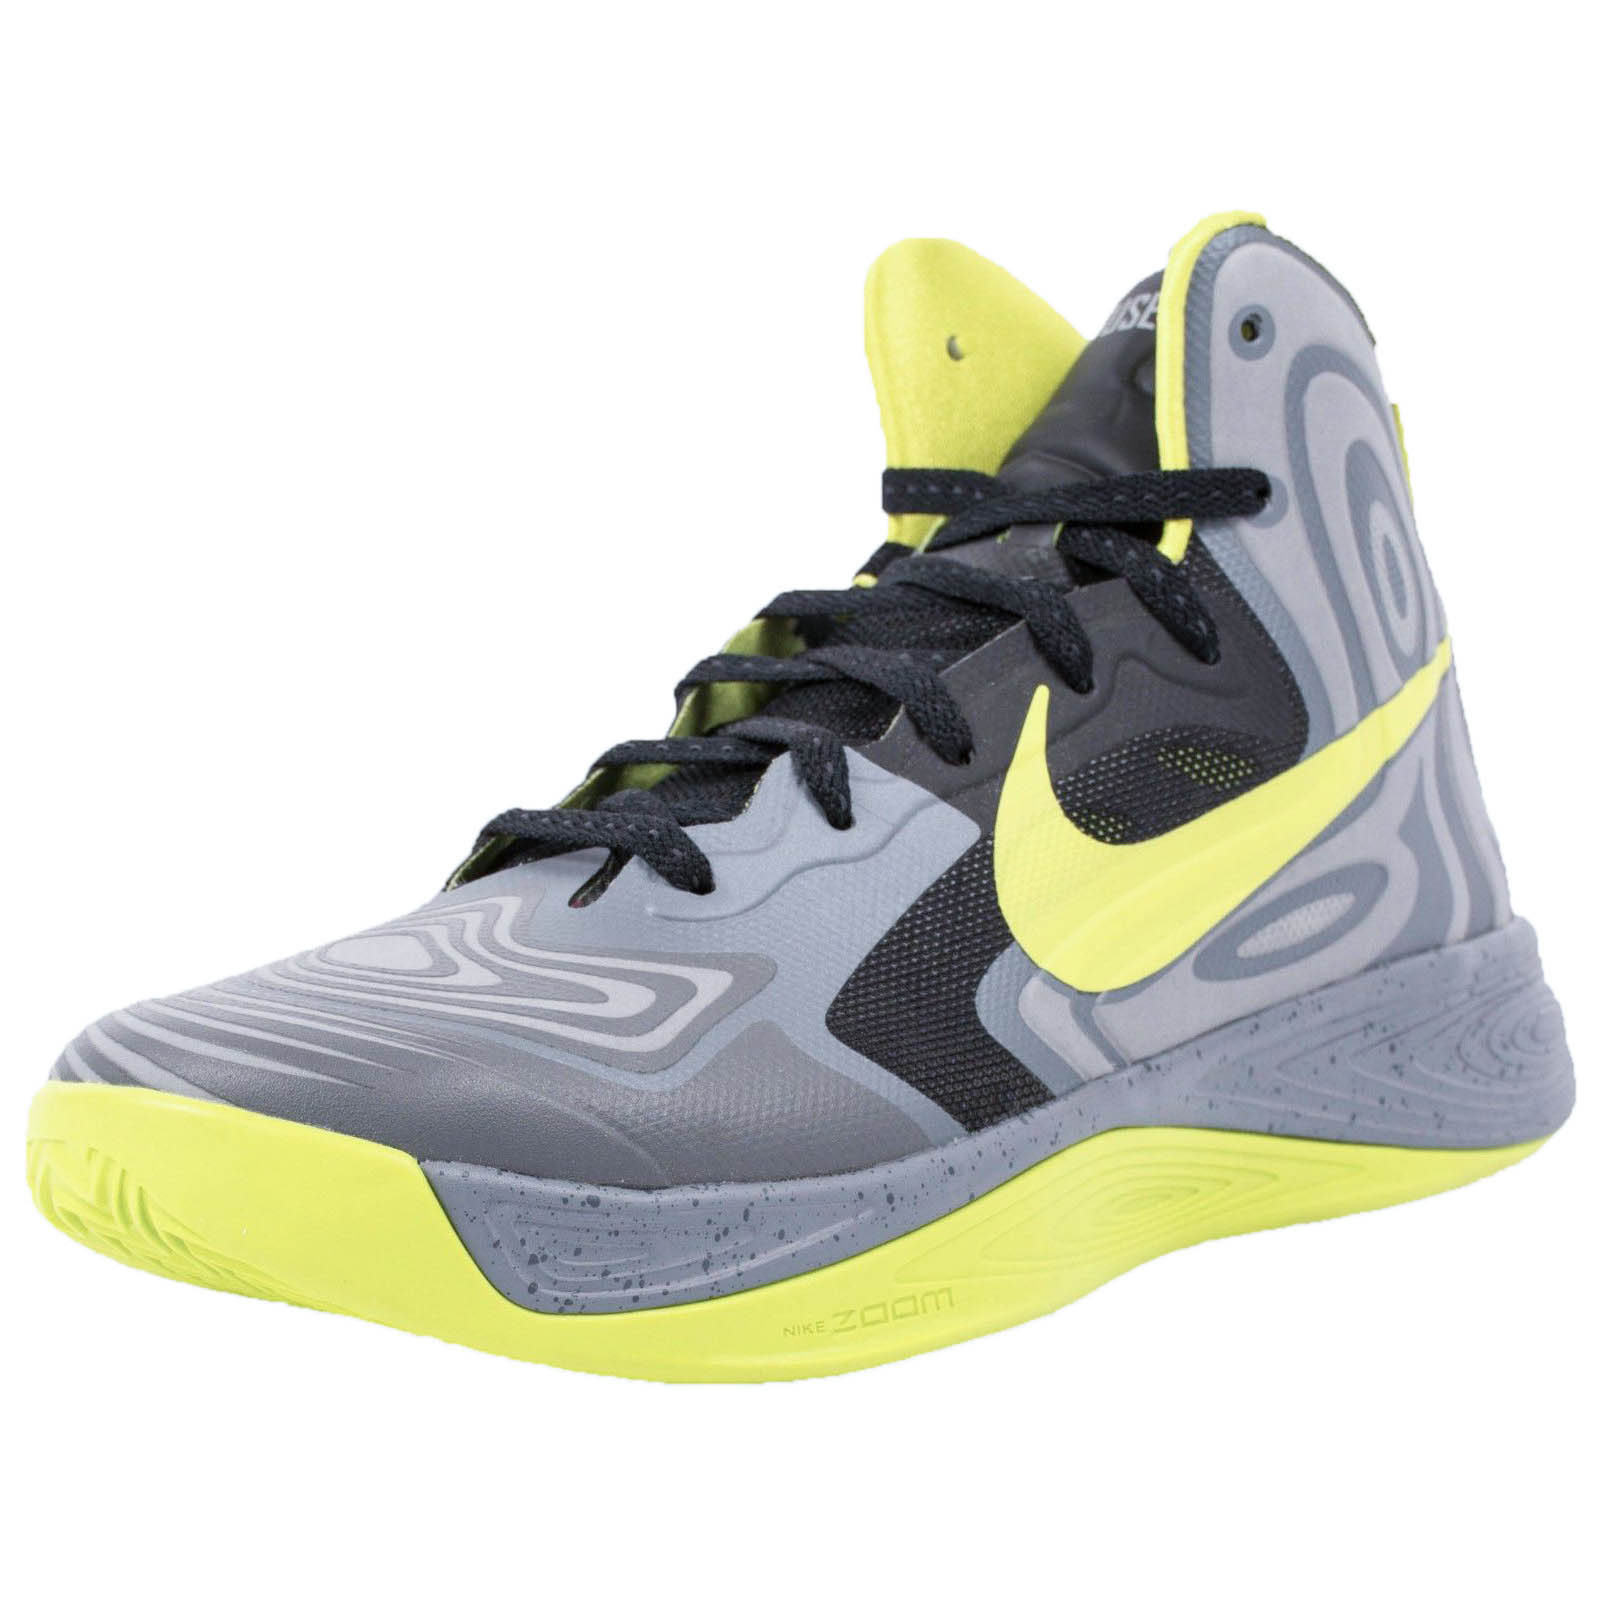 Nike HYPERFUSE SUPREME BASKETBALL SHOES COOL GREY ATOMIC ...